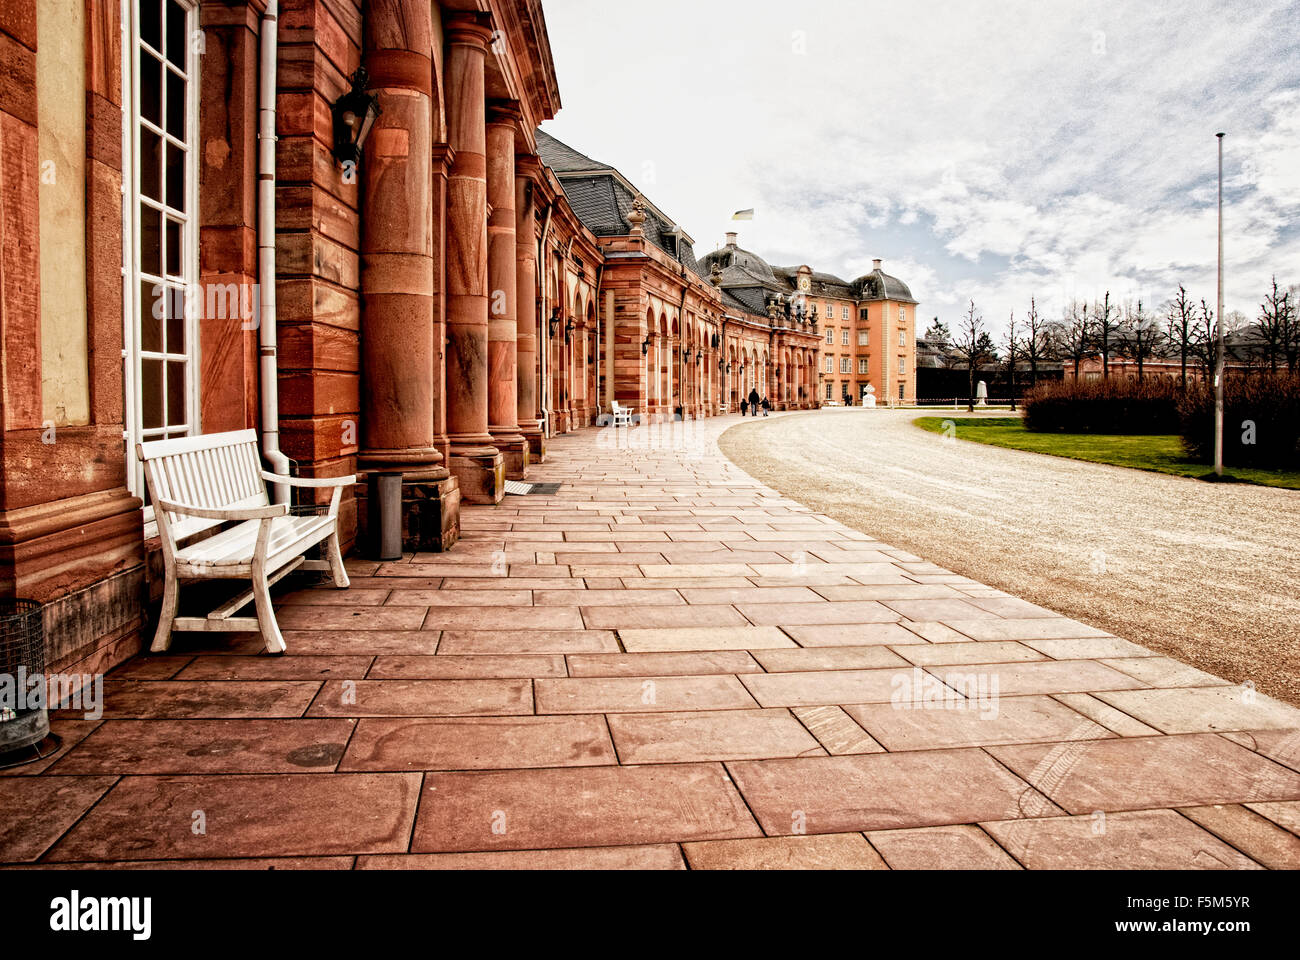 Red sandstone palace walkway with row of smooth columns. - Stock Image